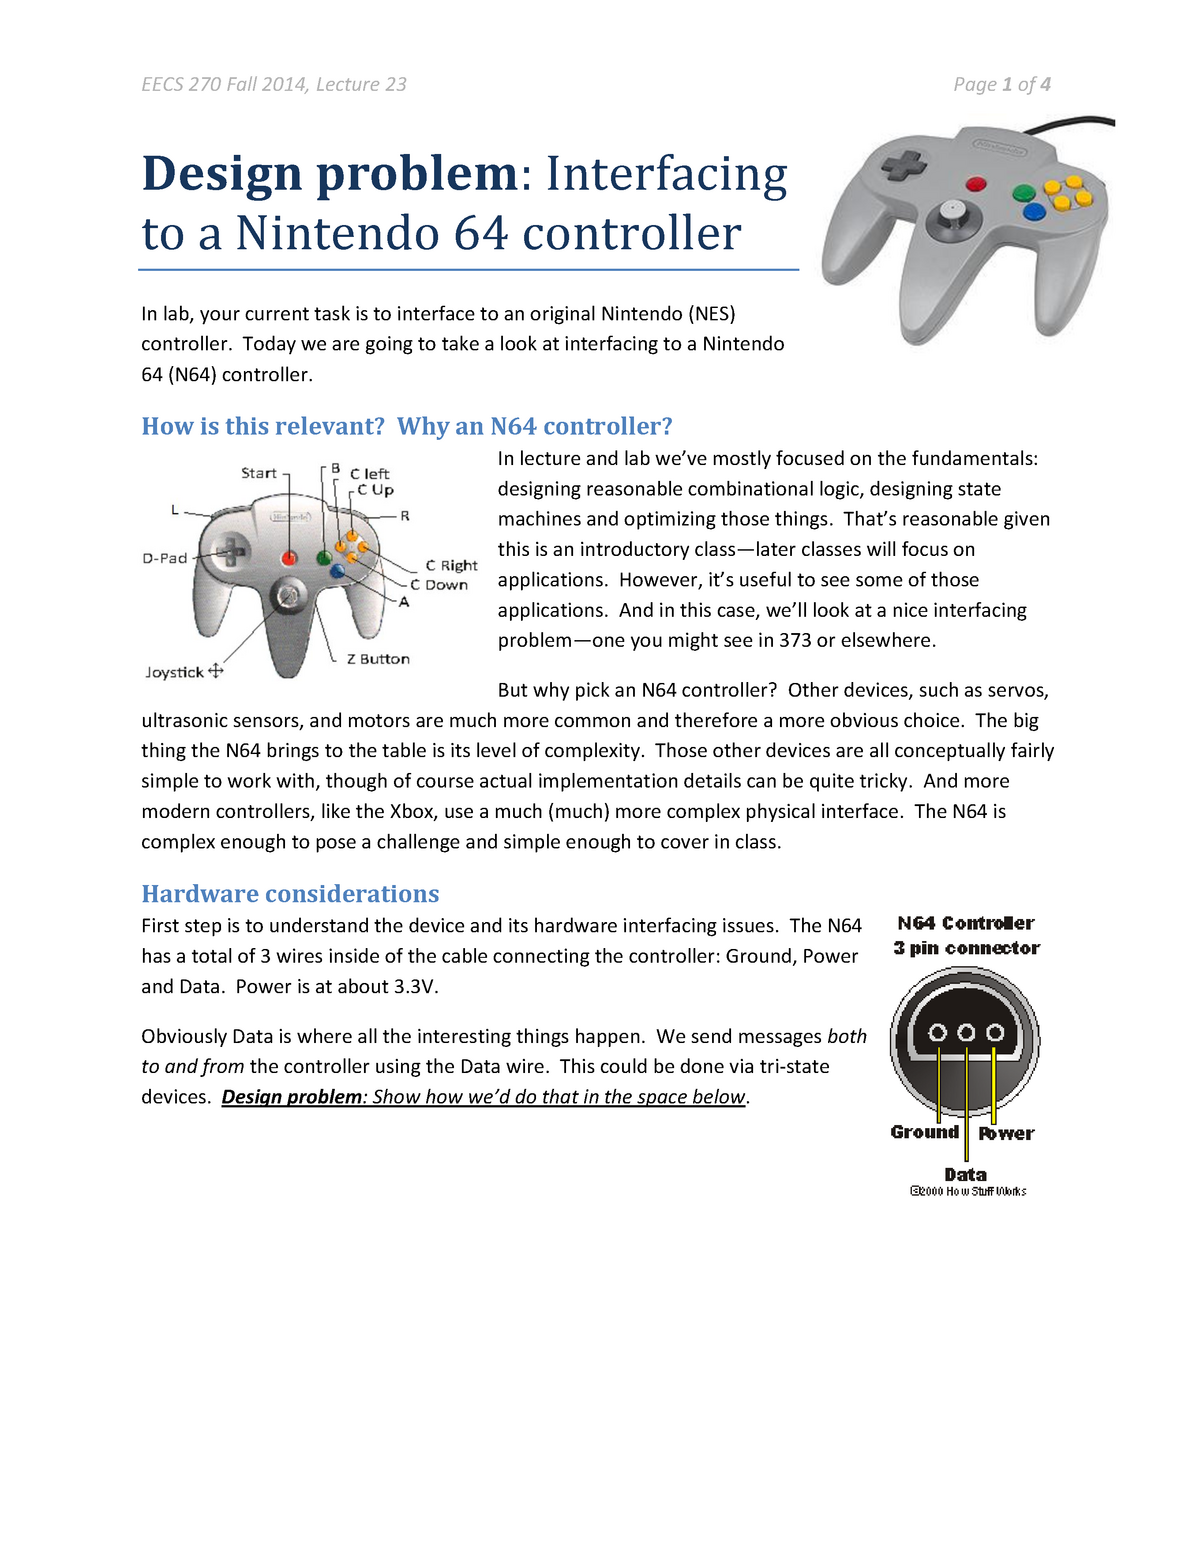 N Controller Wiring Diagram on n64 controller circuit diagram, joystick wiring diagram, n64 controller disassembly, nintendo 64 wiring diagram, gamecube wiring diagram, n64 controller schematic,